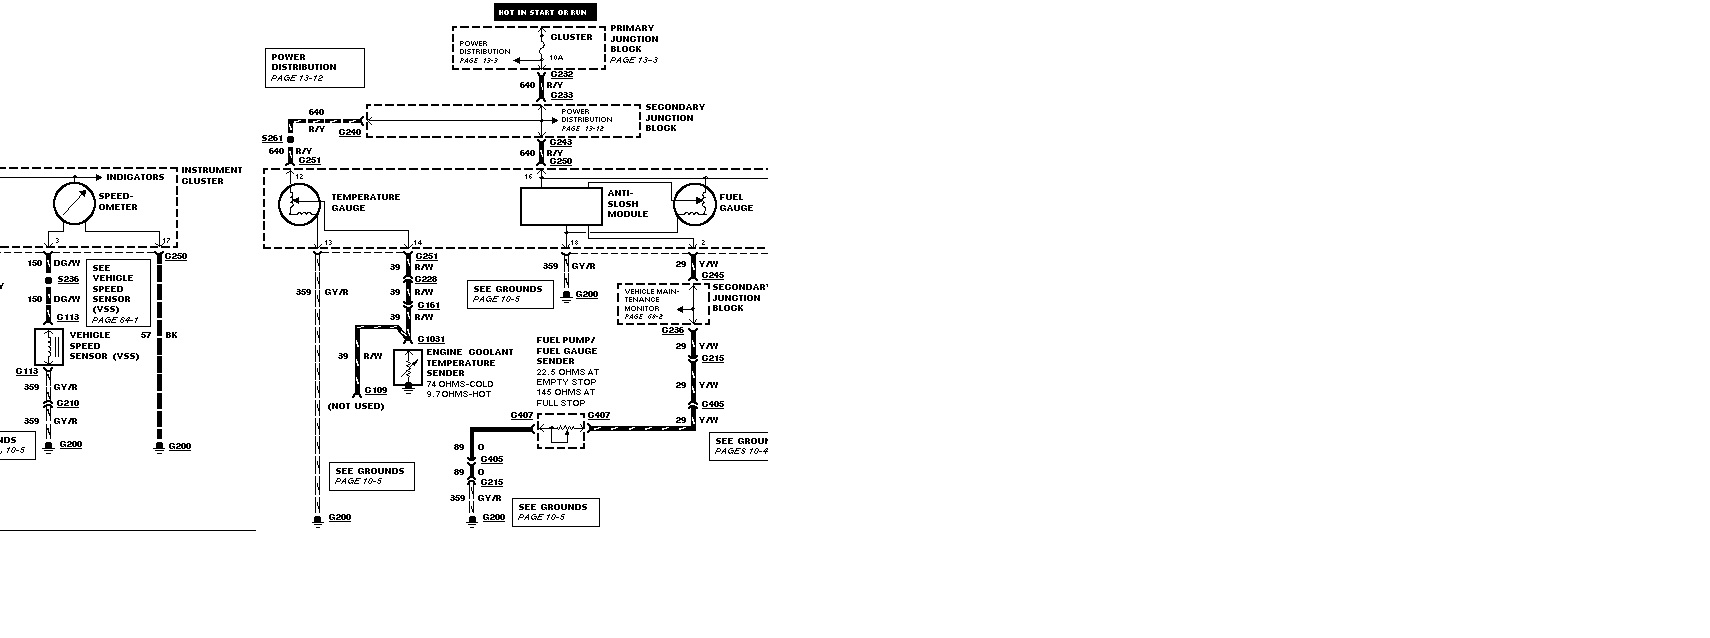 99 mercury cougar fuel pump wiring diagram image 5